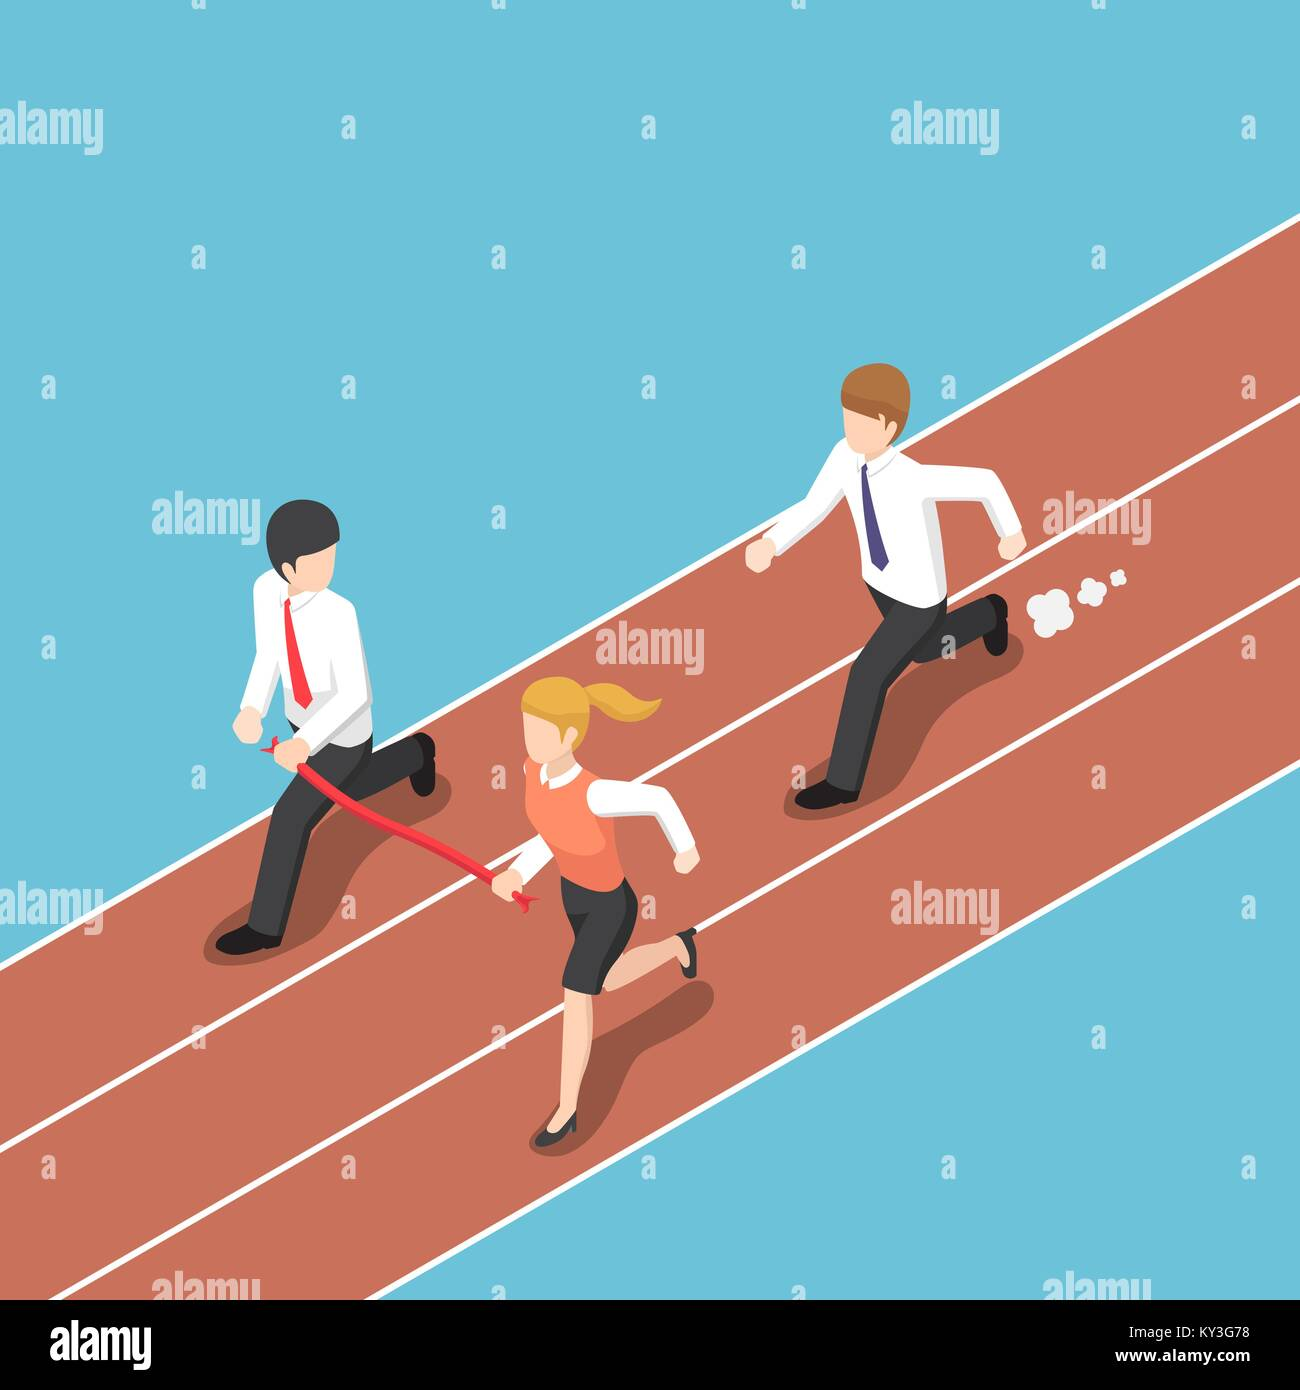 Flat 3d isometric business rival hold finish line away from businessman. Business competition concept. Stock Vector